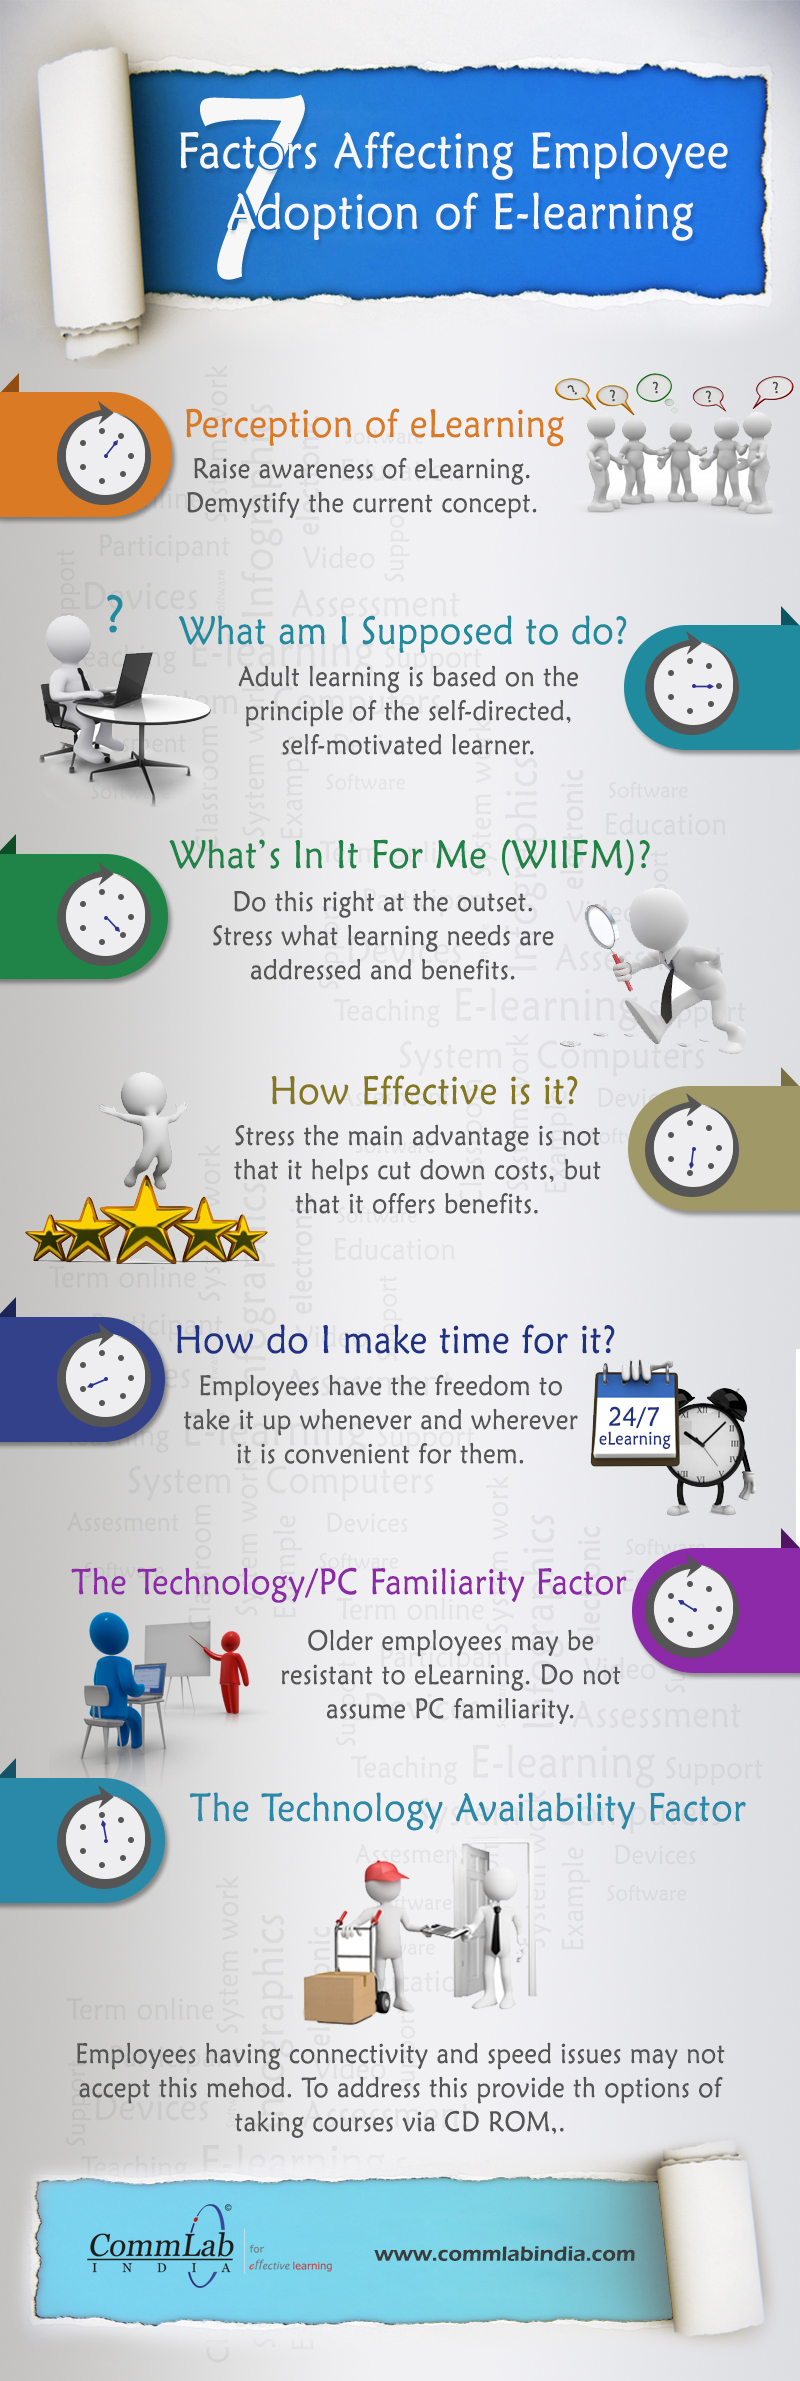 7 Factors Impacting Employees' Adoption of E-learning – An Infographic